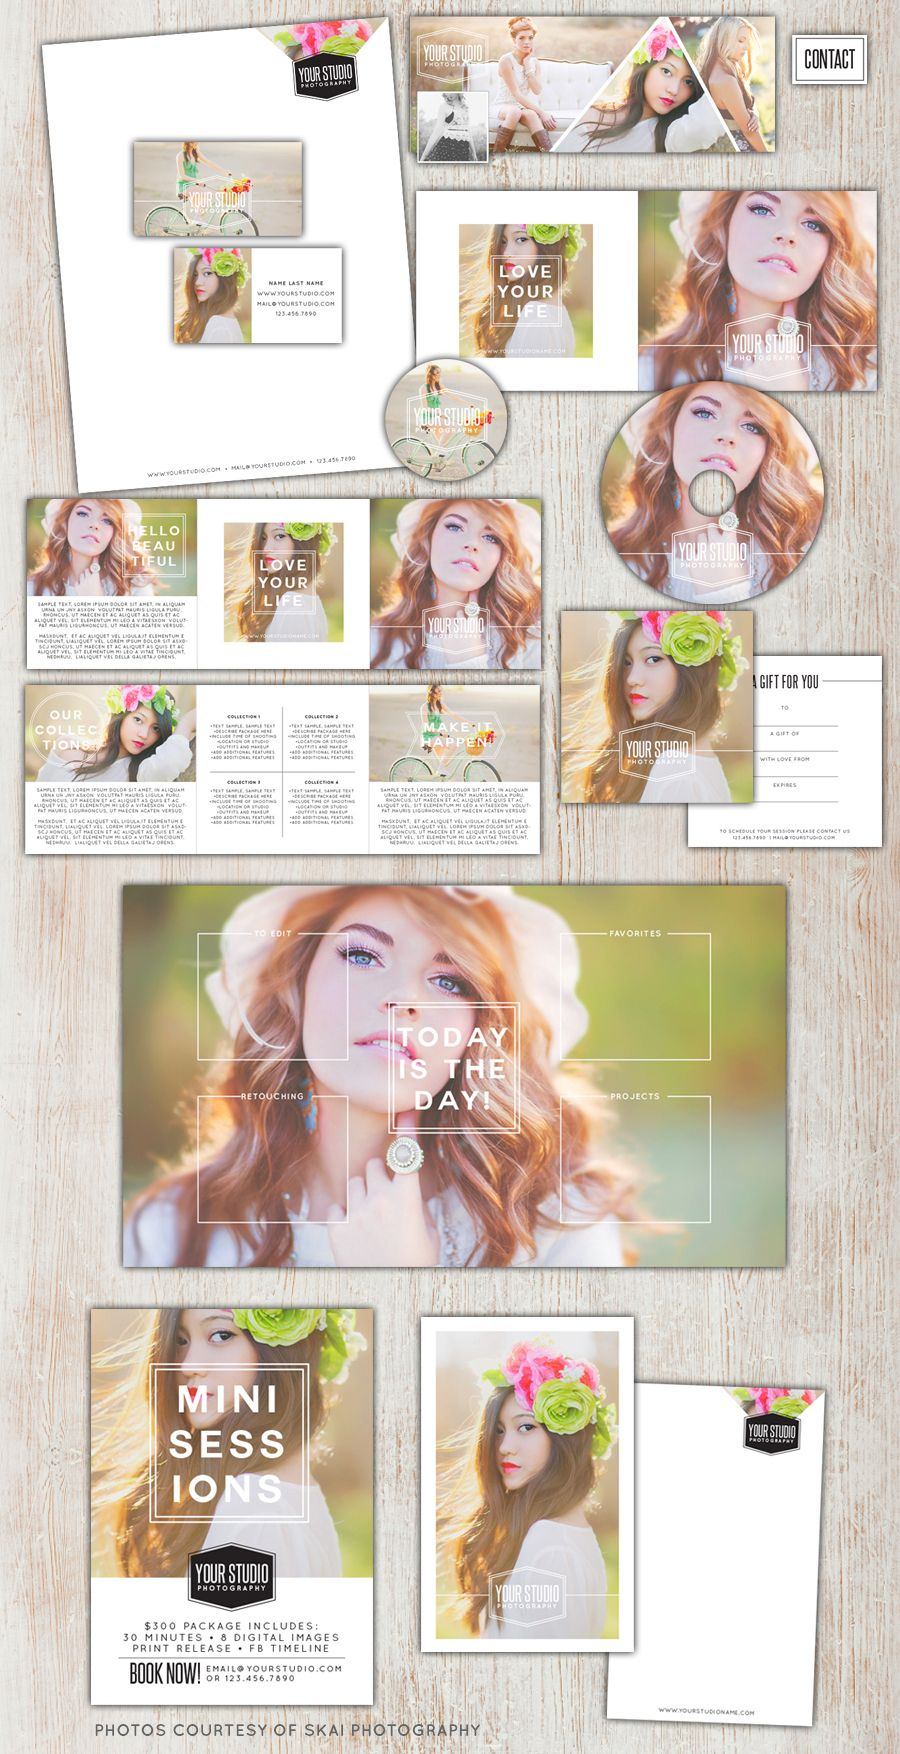 Marketing designs for photographers - Photoshop organizing tools for ...